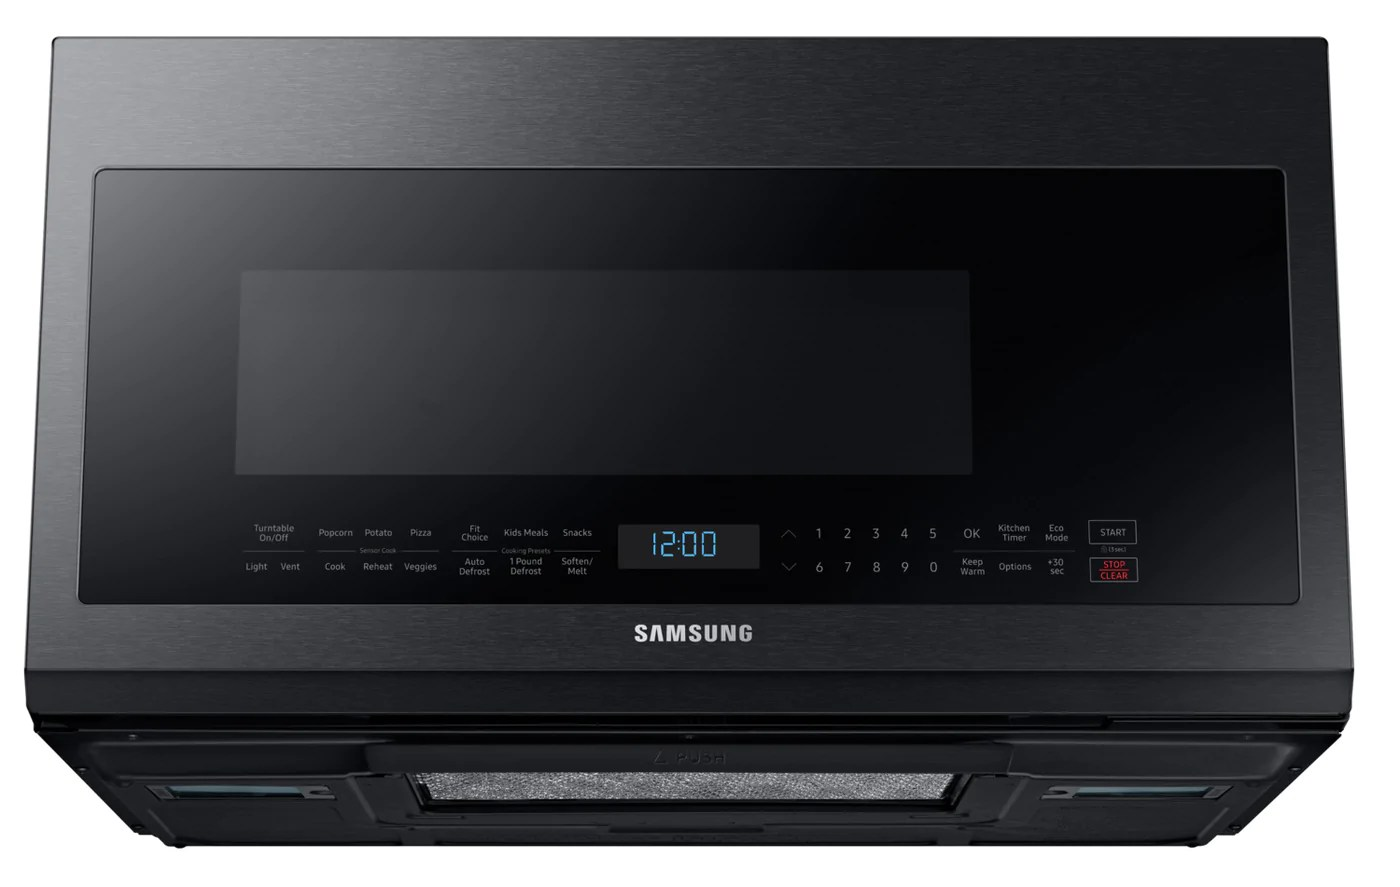 samsung black stainless steel over the range microwave 2 1 cu ft me21m706bag ac